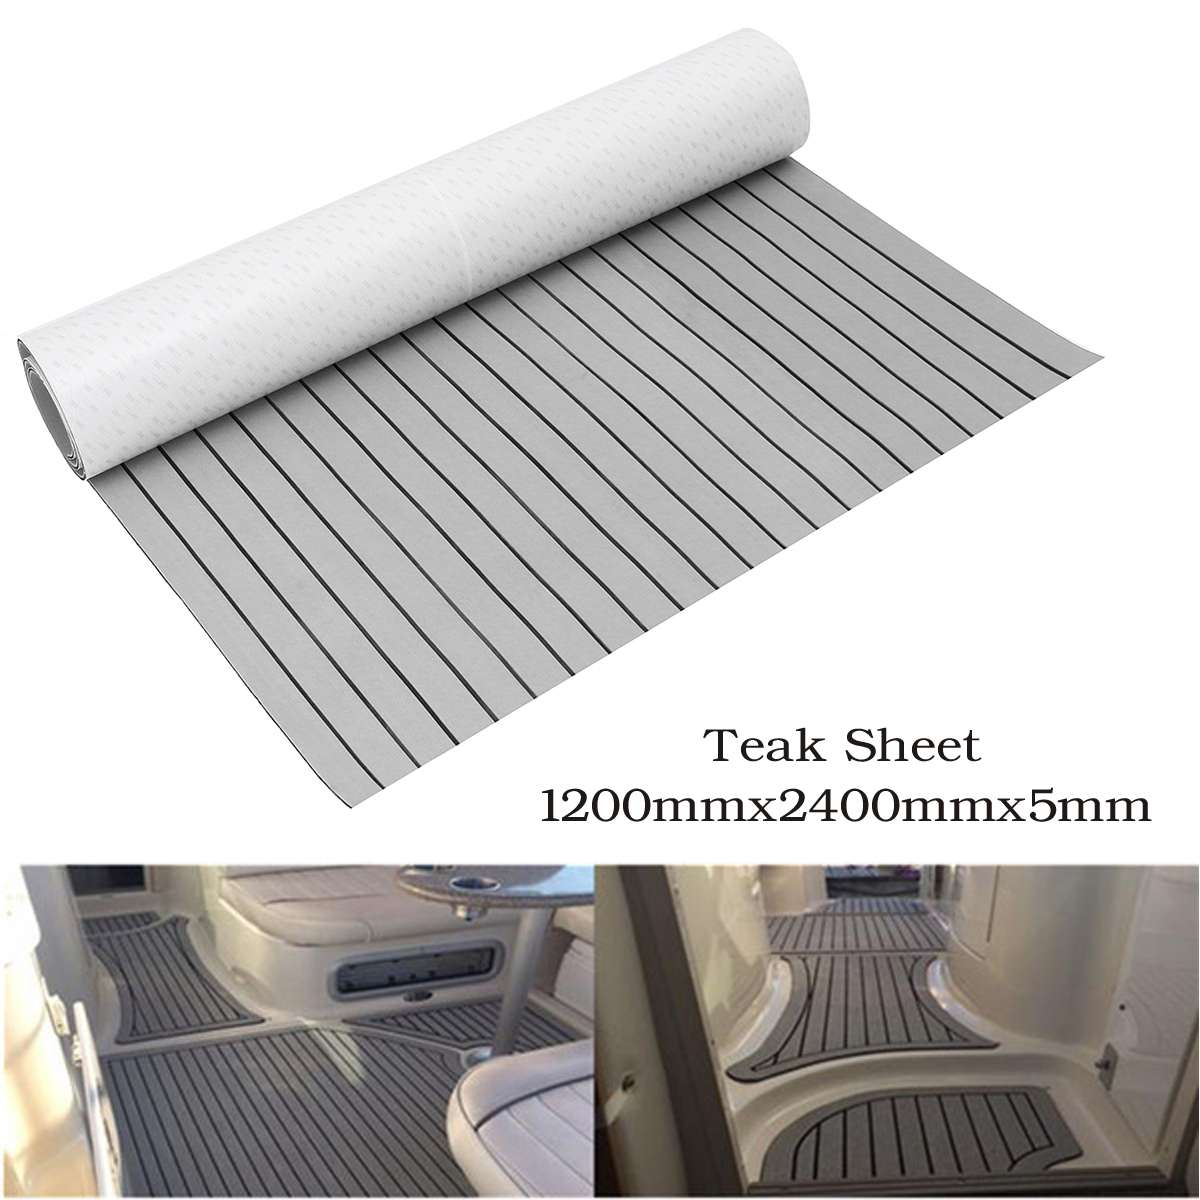 1200mmx2400mm Self Adhesive EVA Foam Teak Sheet Teak Boat Decking Car Boat Yacht Synthetic Teak Flooring Floor Mat Pad Grey 5mm